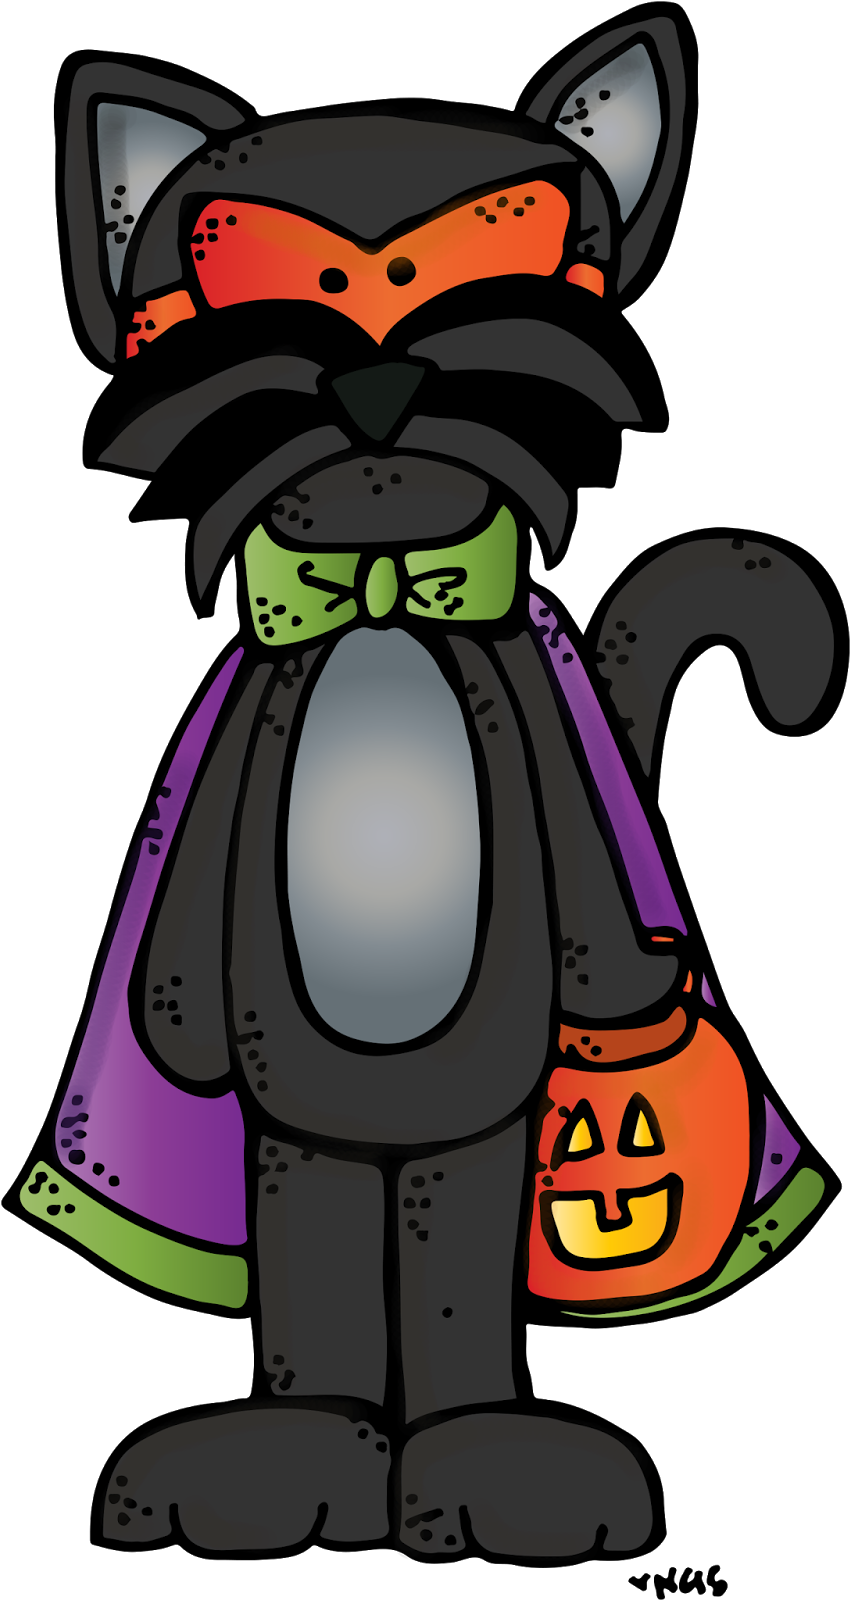 Halloween clipart vintage graphic transparent download Halloween character mammoth clipart graphic transparent download